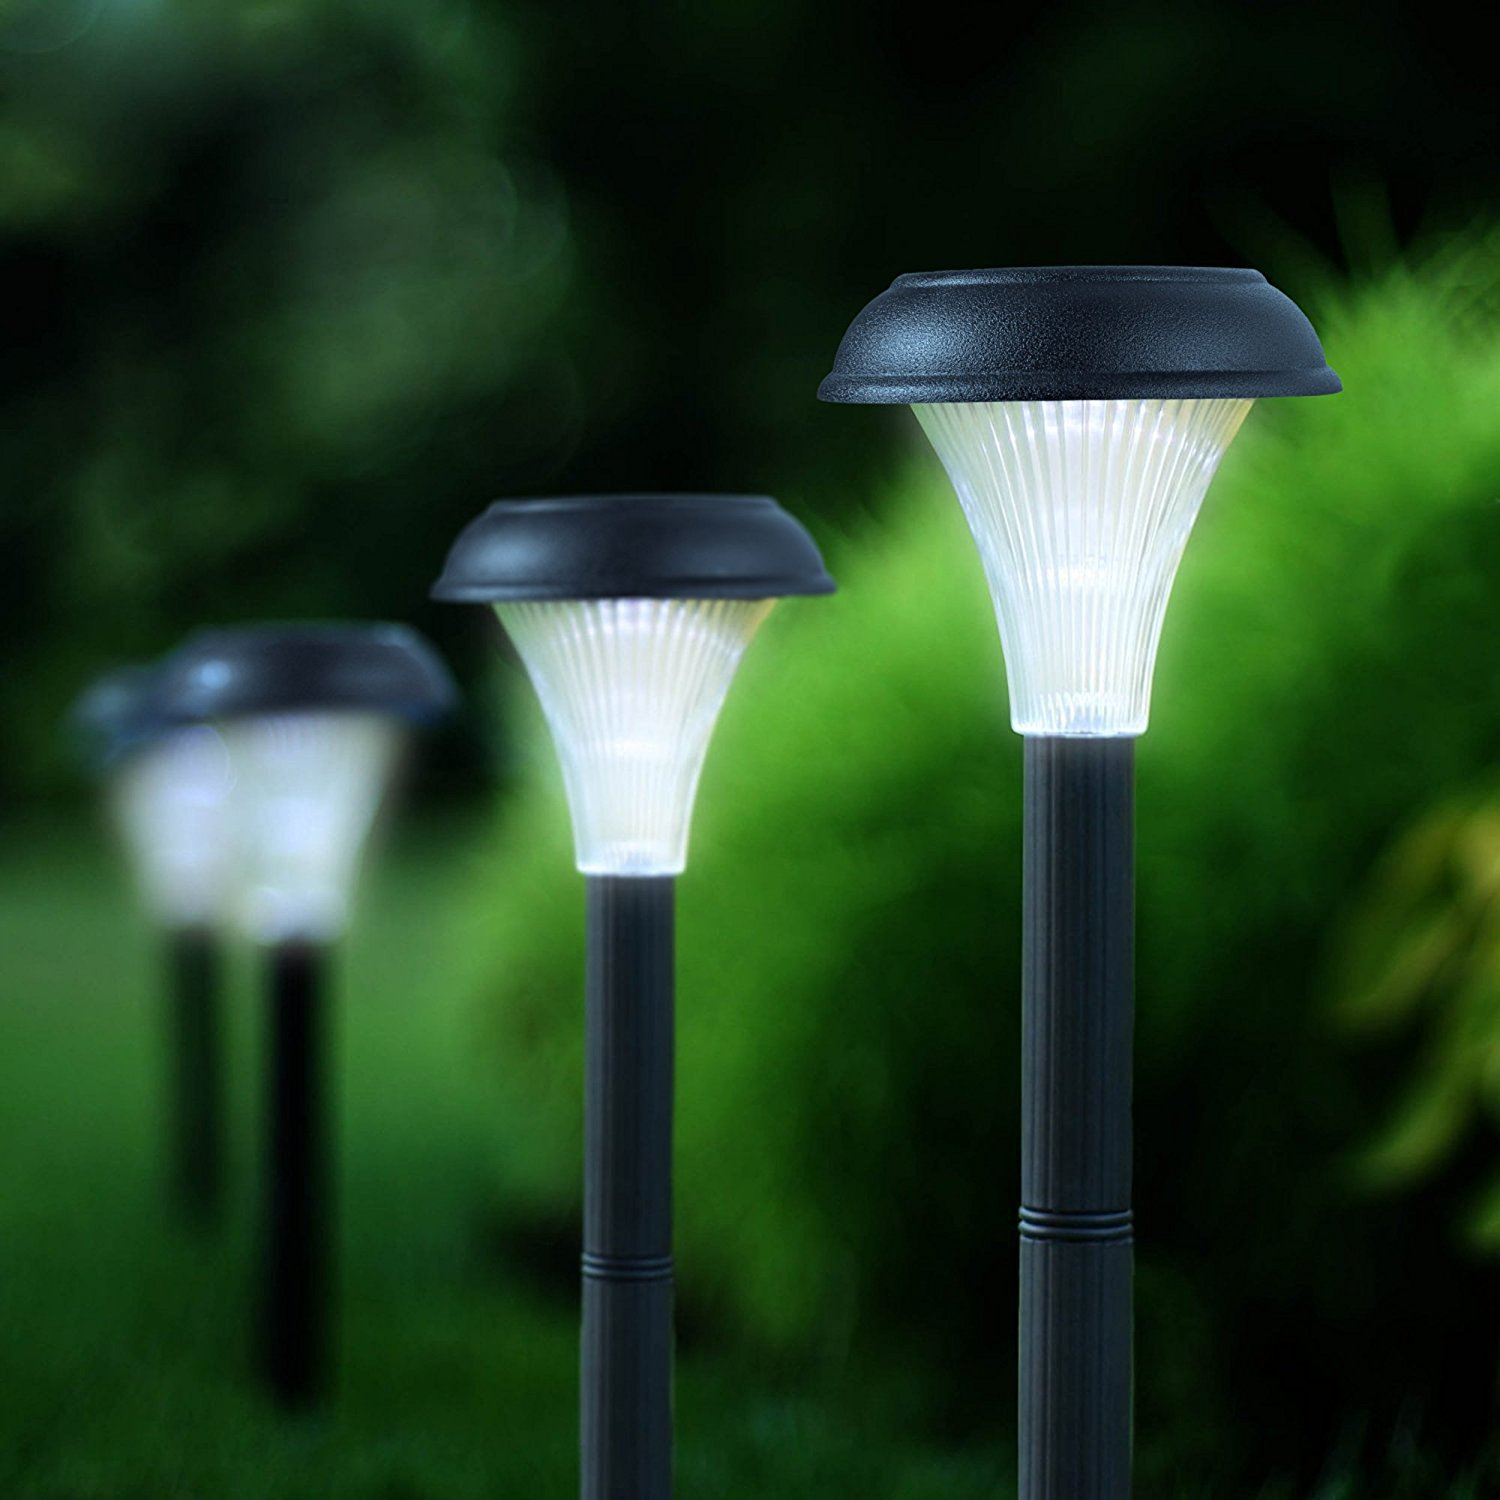 GardenBliss 10 Pack of Outdoor Solar Garden Lights for Your Yard Path Lawn and Landscape Lighting - Walmart.com & GardenBliss 10 Pack of Outdoor Solar Garden Lights for Your Yard ...